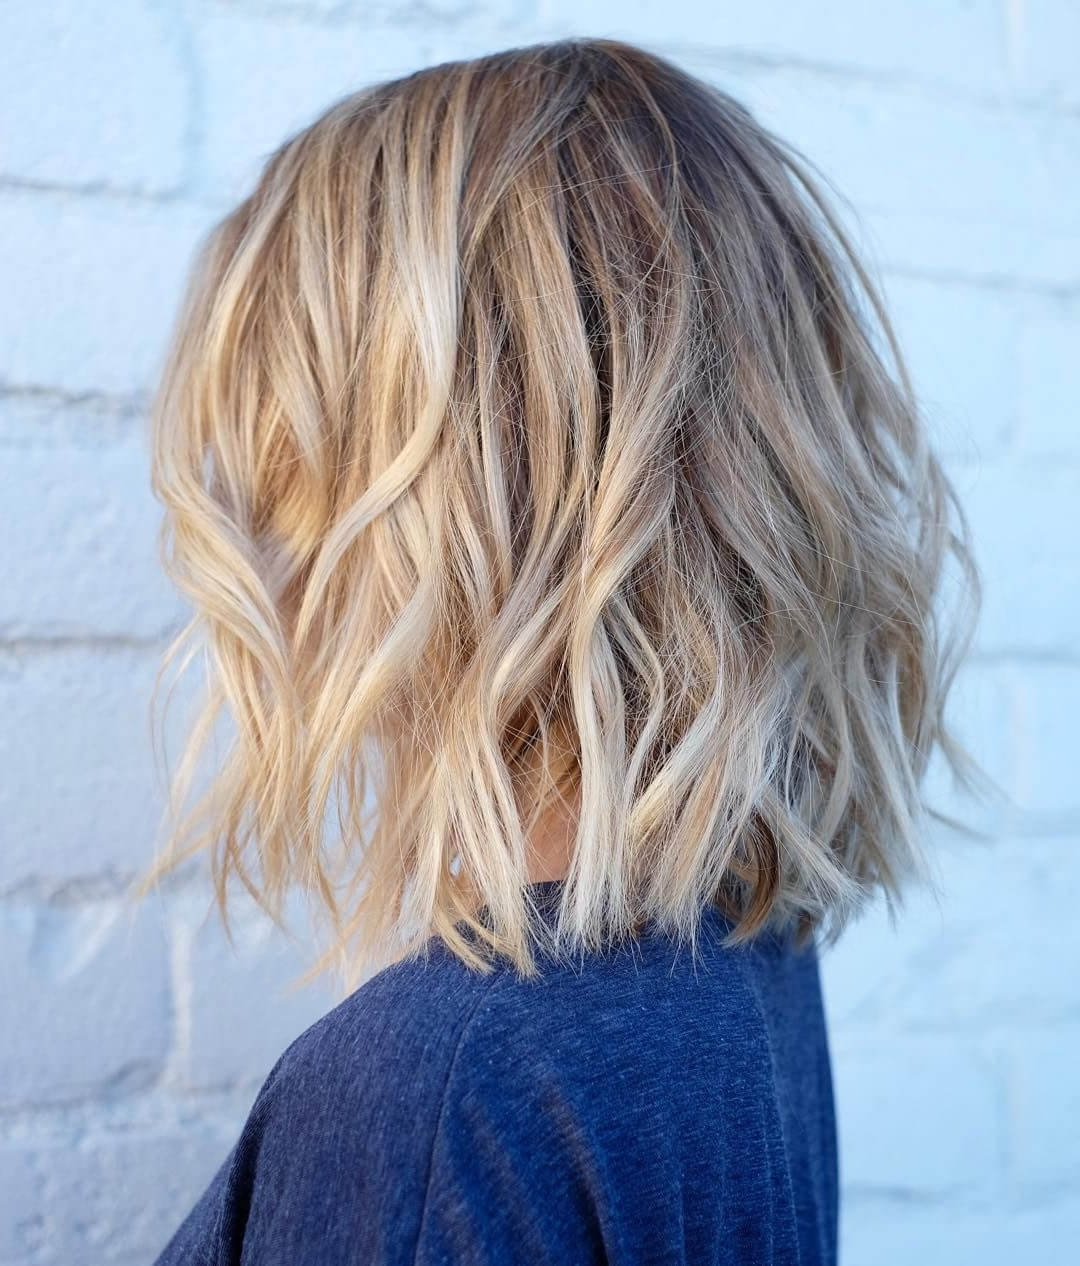 50 Fresh Short Blonde Hair Ideas To Update Your Style In 2018 With Regard To Widely Used Medium Honey Hued Blonde Hairstyles (View 16 of 20)